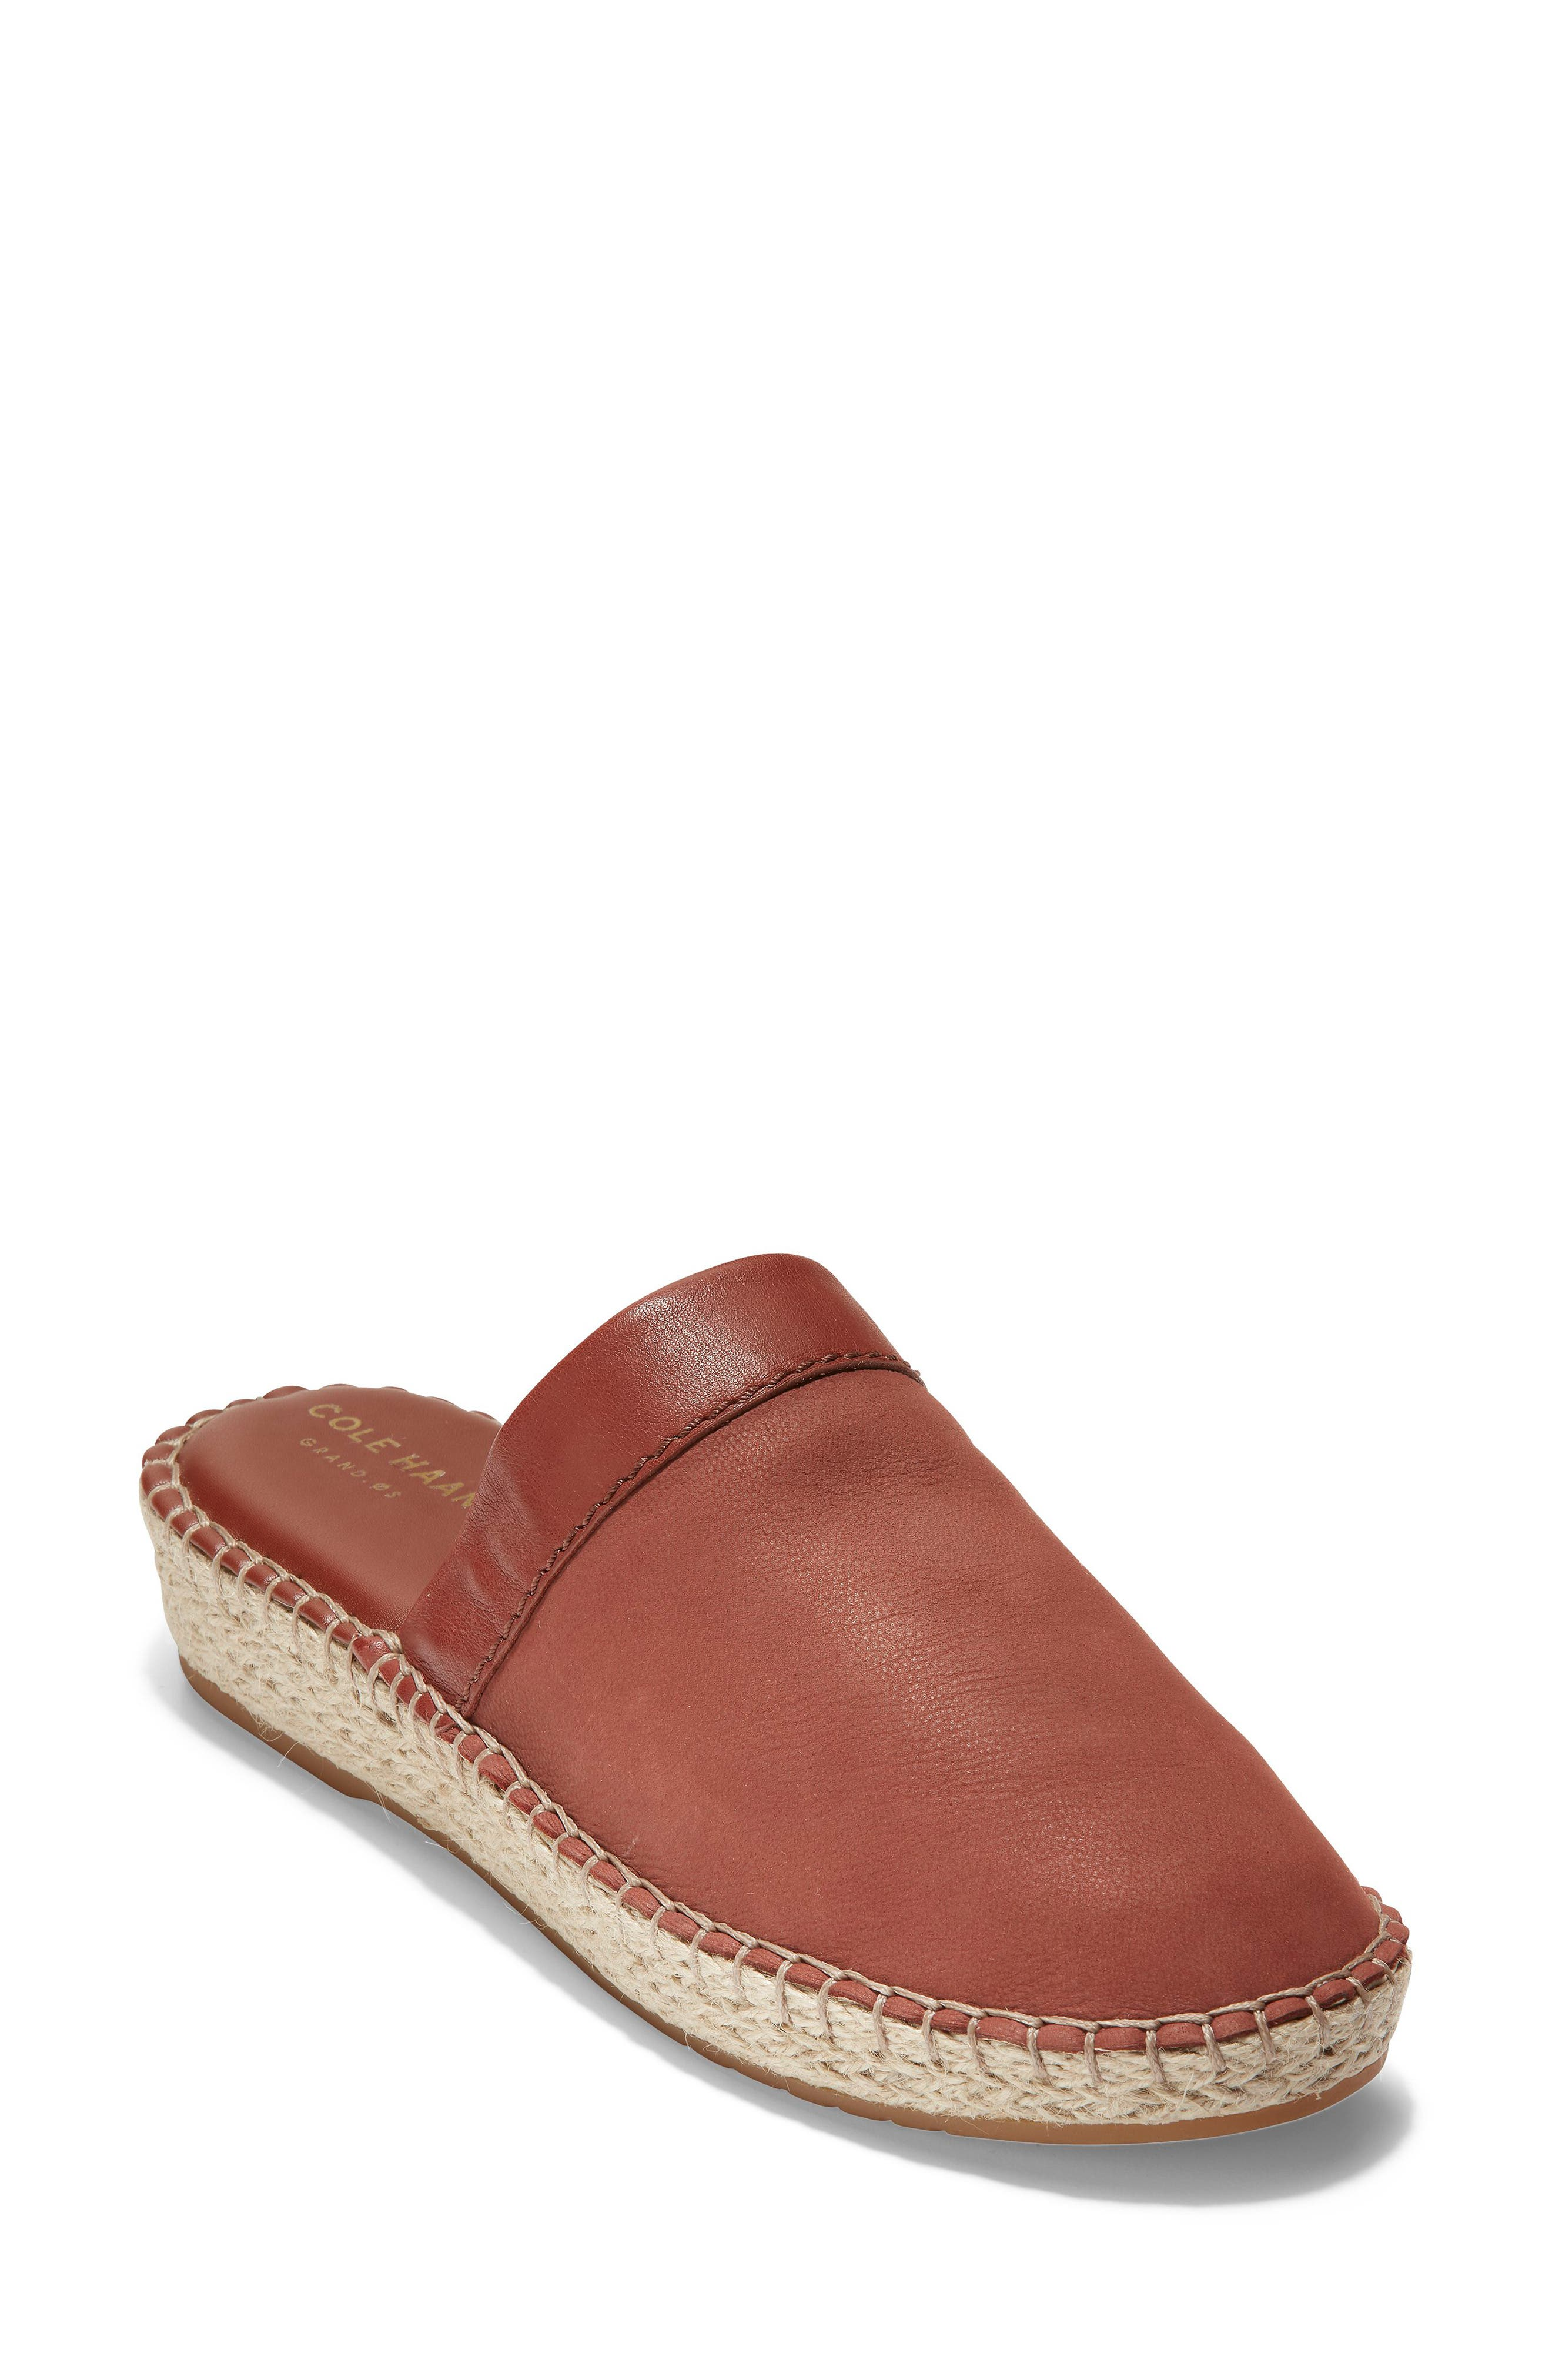 Cole Haan Cloudfell Espadrille Mule B - Red